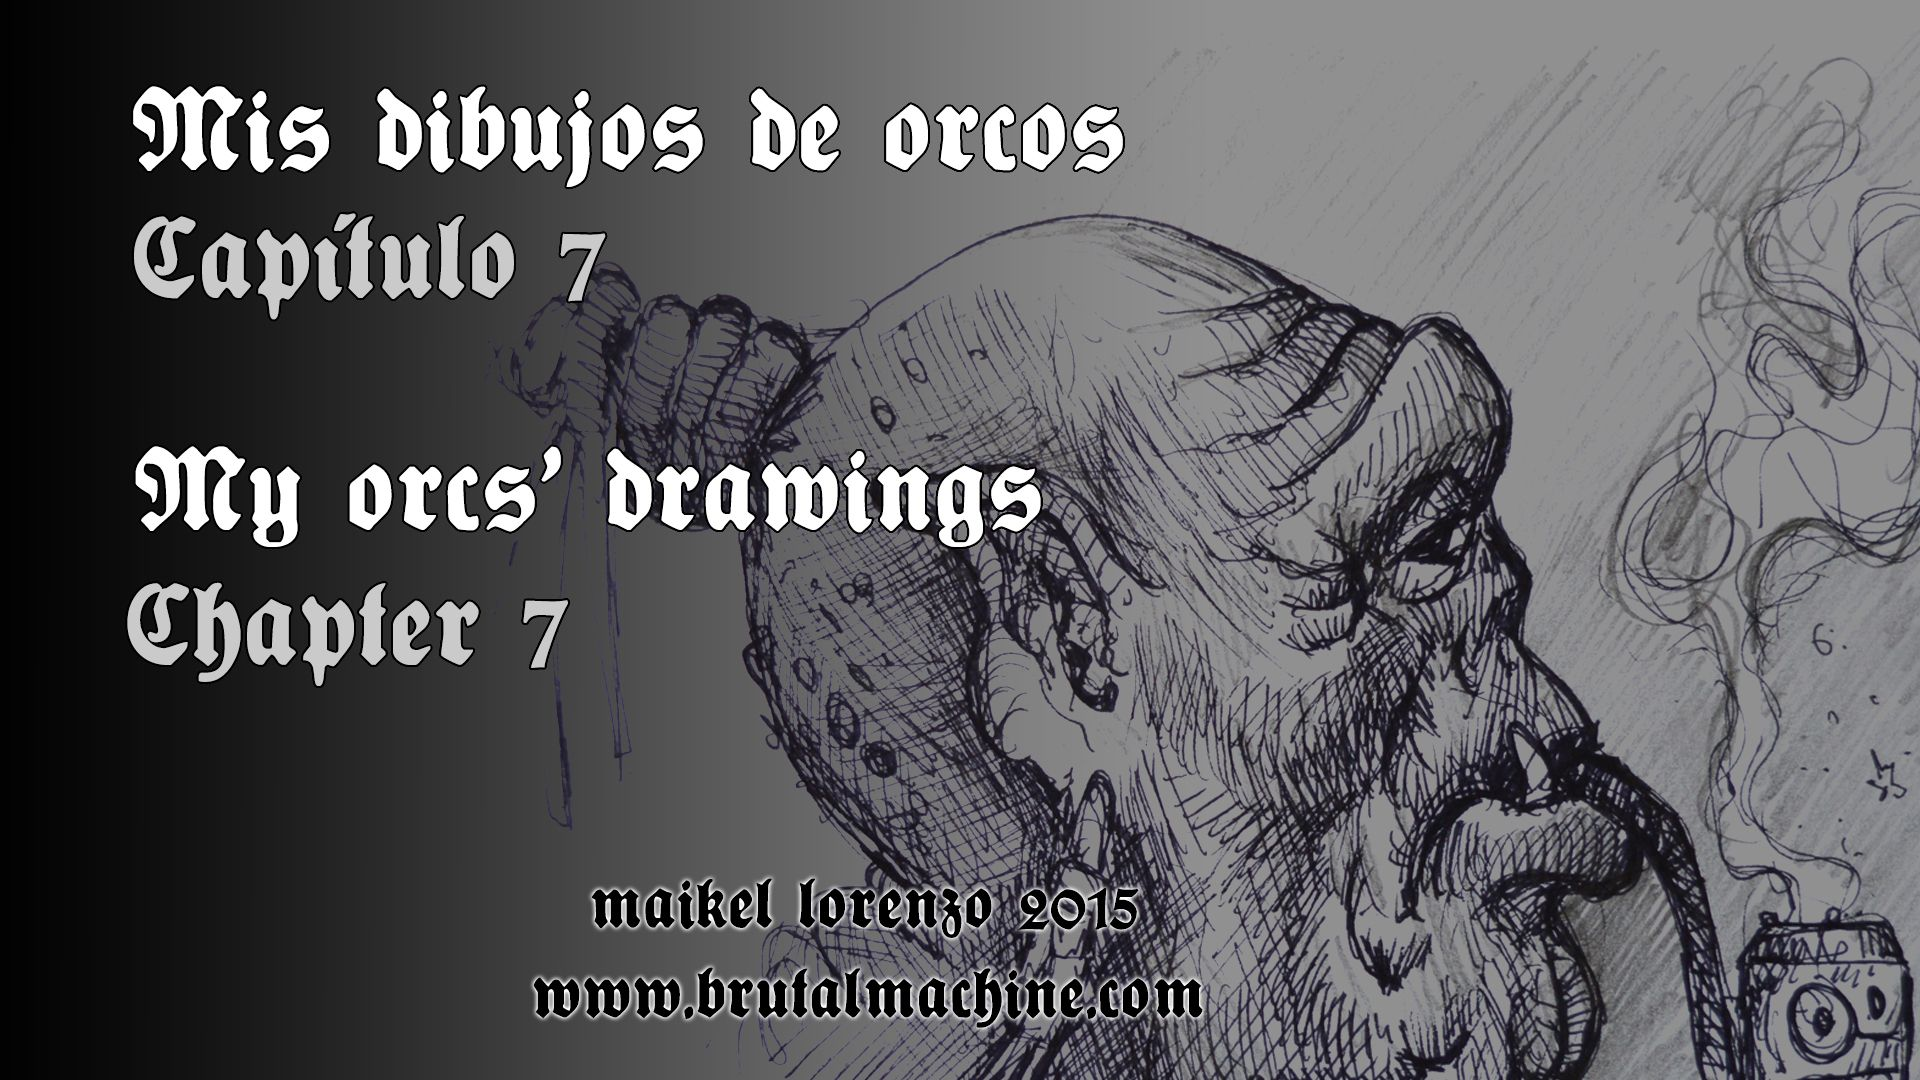 Mis dibujos de orcos cap7 My orcs' drawings ch7 #orcs #orco   https://www.youtube.com/watch?v=54rIFY-Y5fs